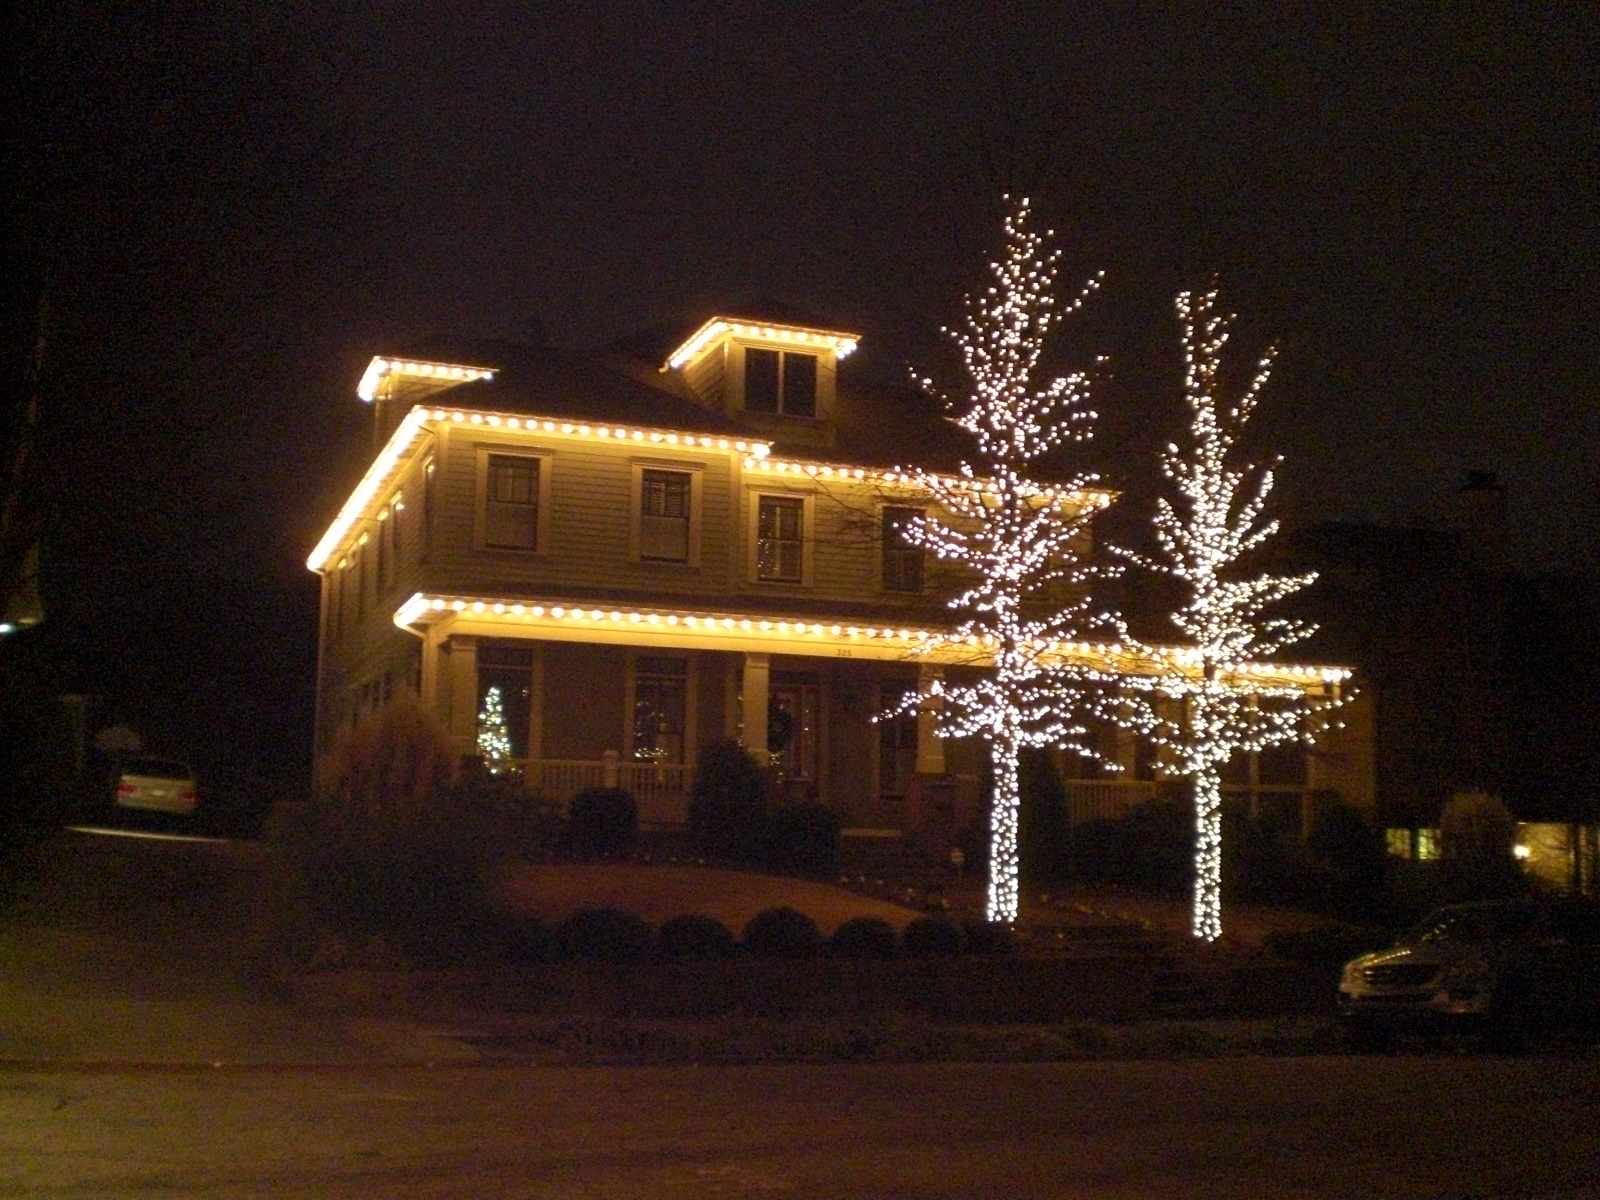 Outdoor House Decorations For Christmas : Outside christmas lights ideas homesfeed